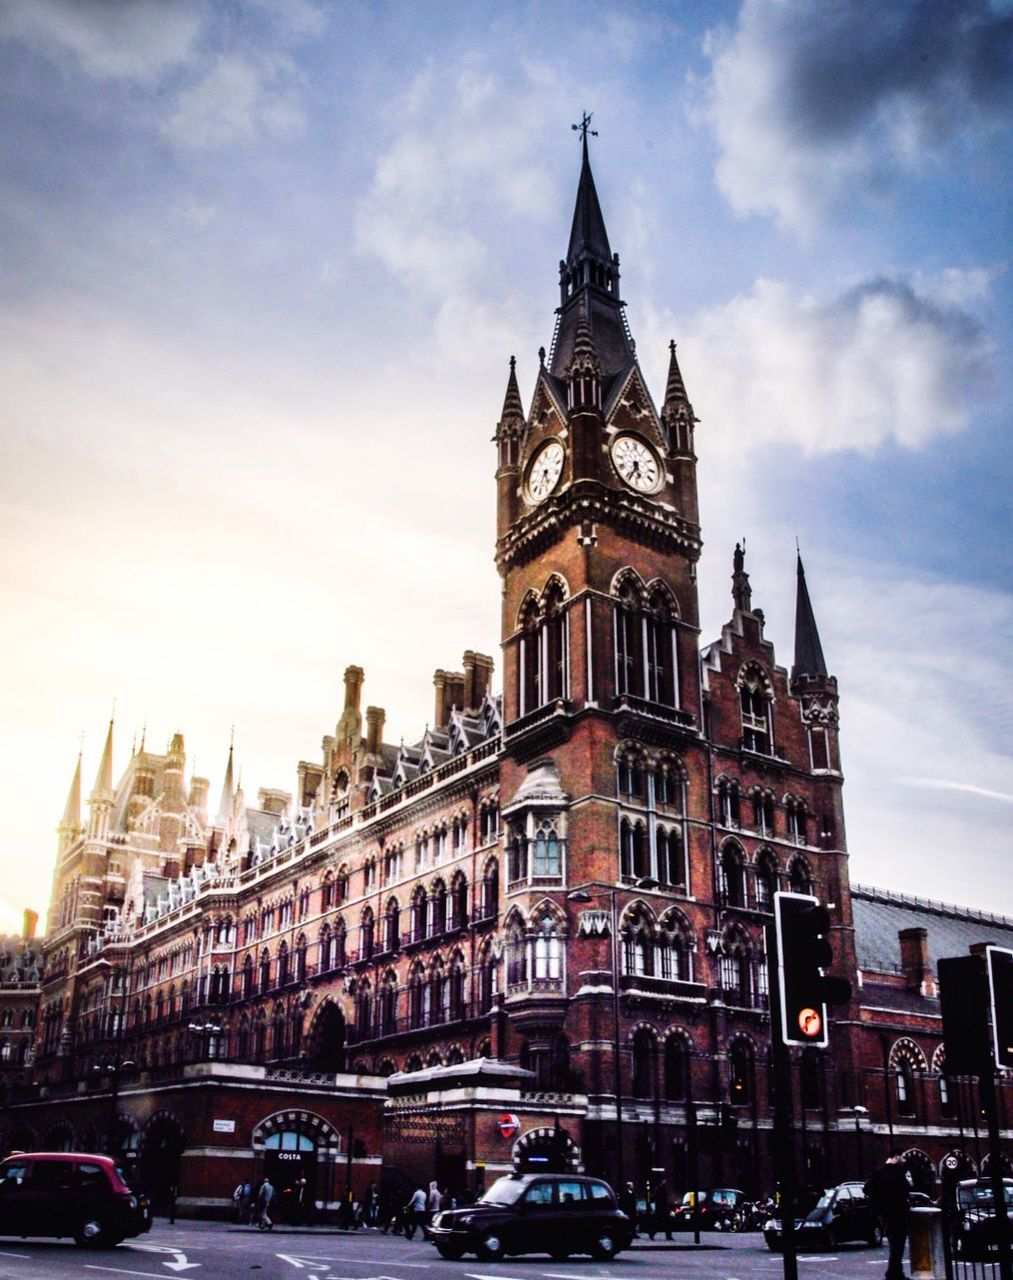 architecture, building exterior, sky, built structure, clock tower, cloud - sky, tower, travel destinations, outdoors, city, history, day, no people